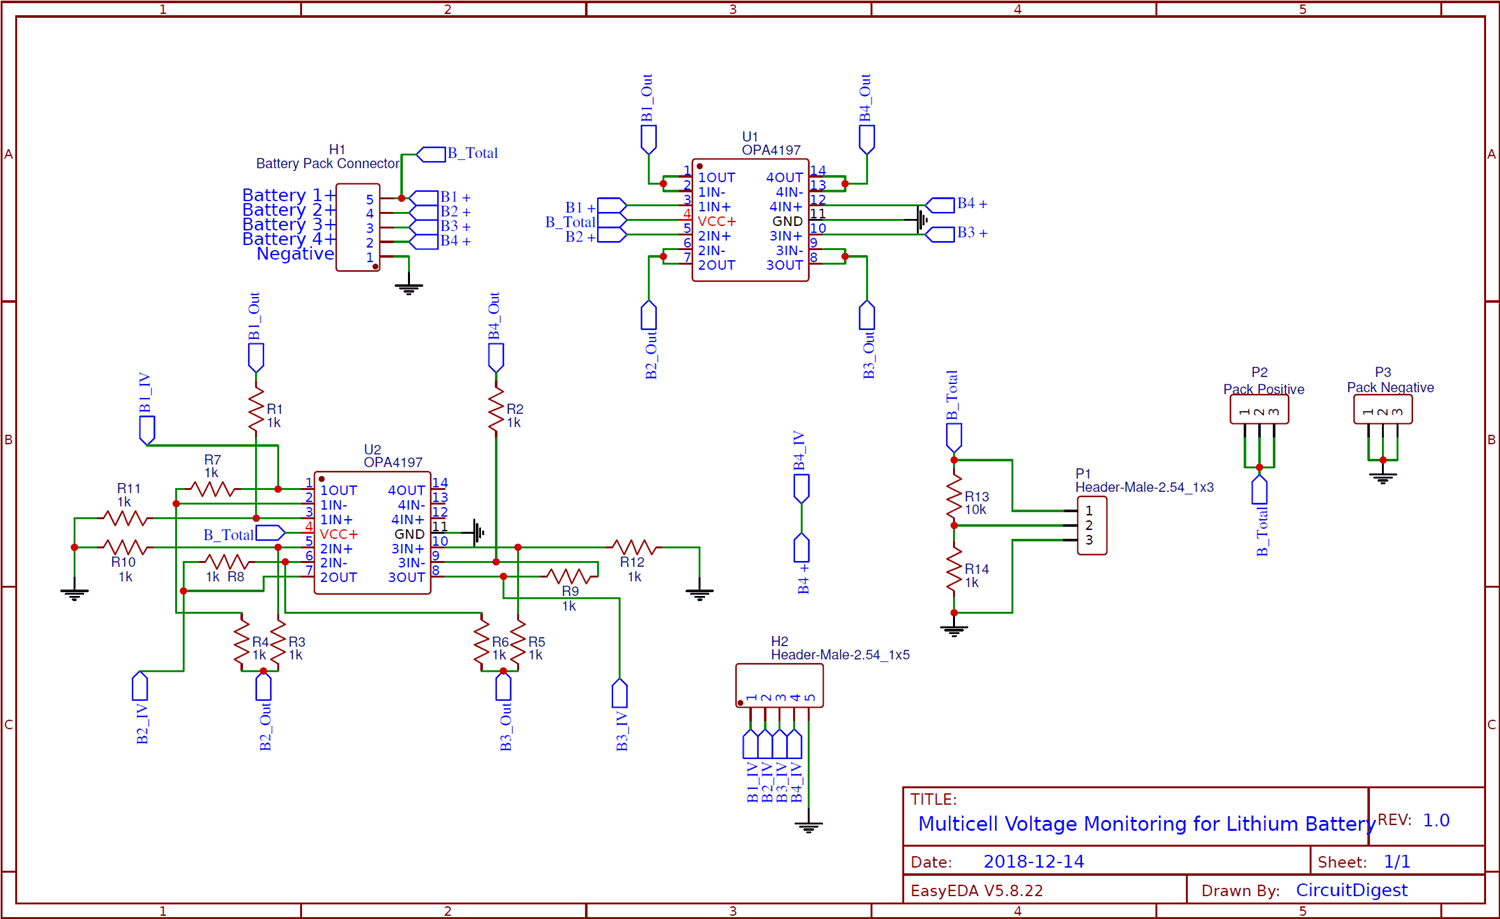 Circuit Diagram For Multicell Voltage Monitoring For Lithium Battery Pack In Electric Vehicles Lithium Battery Battery Pack Battery